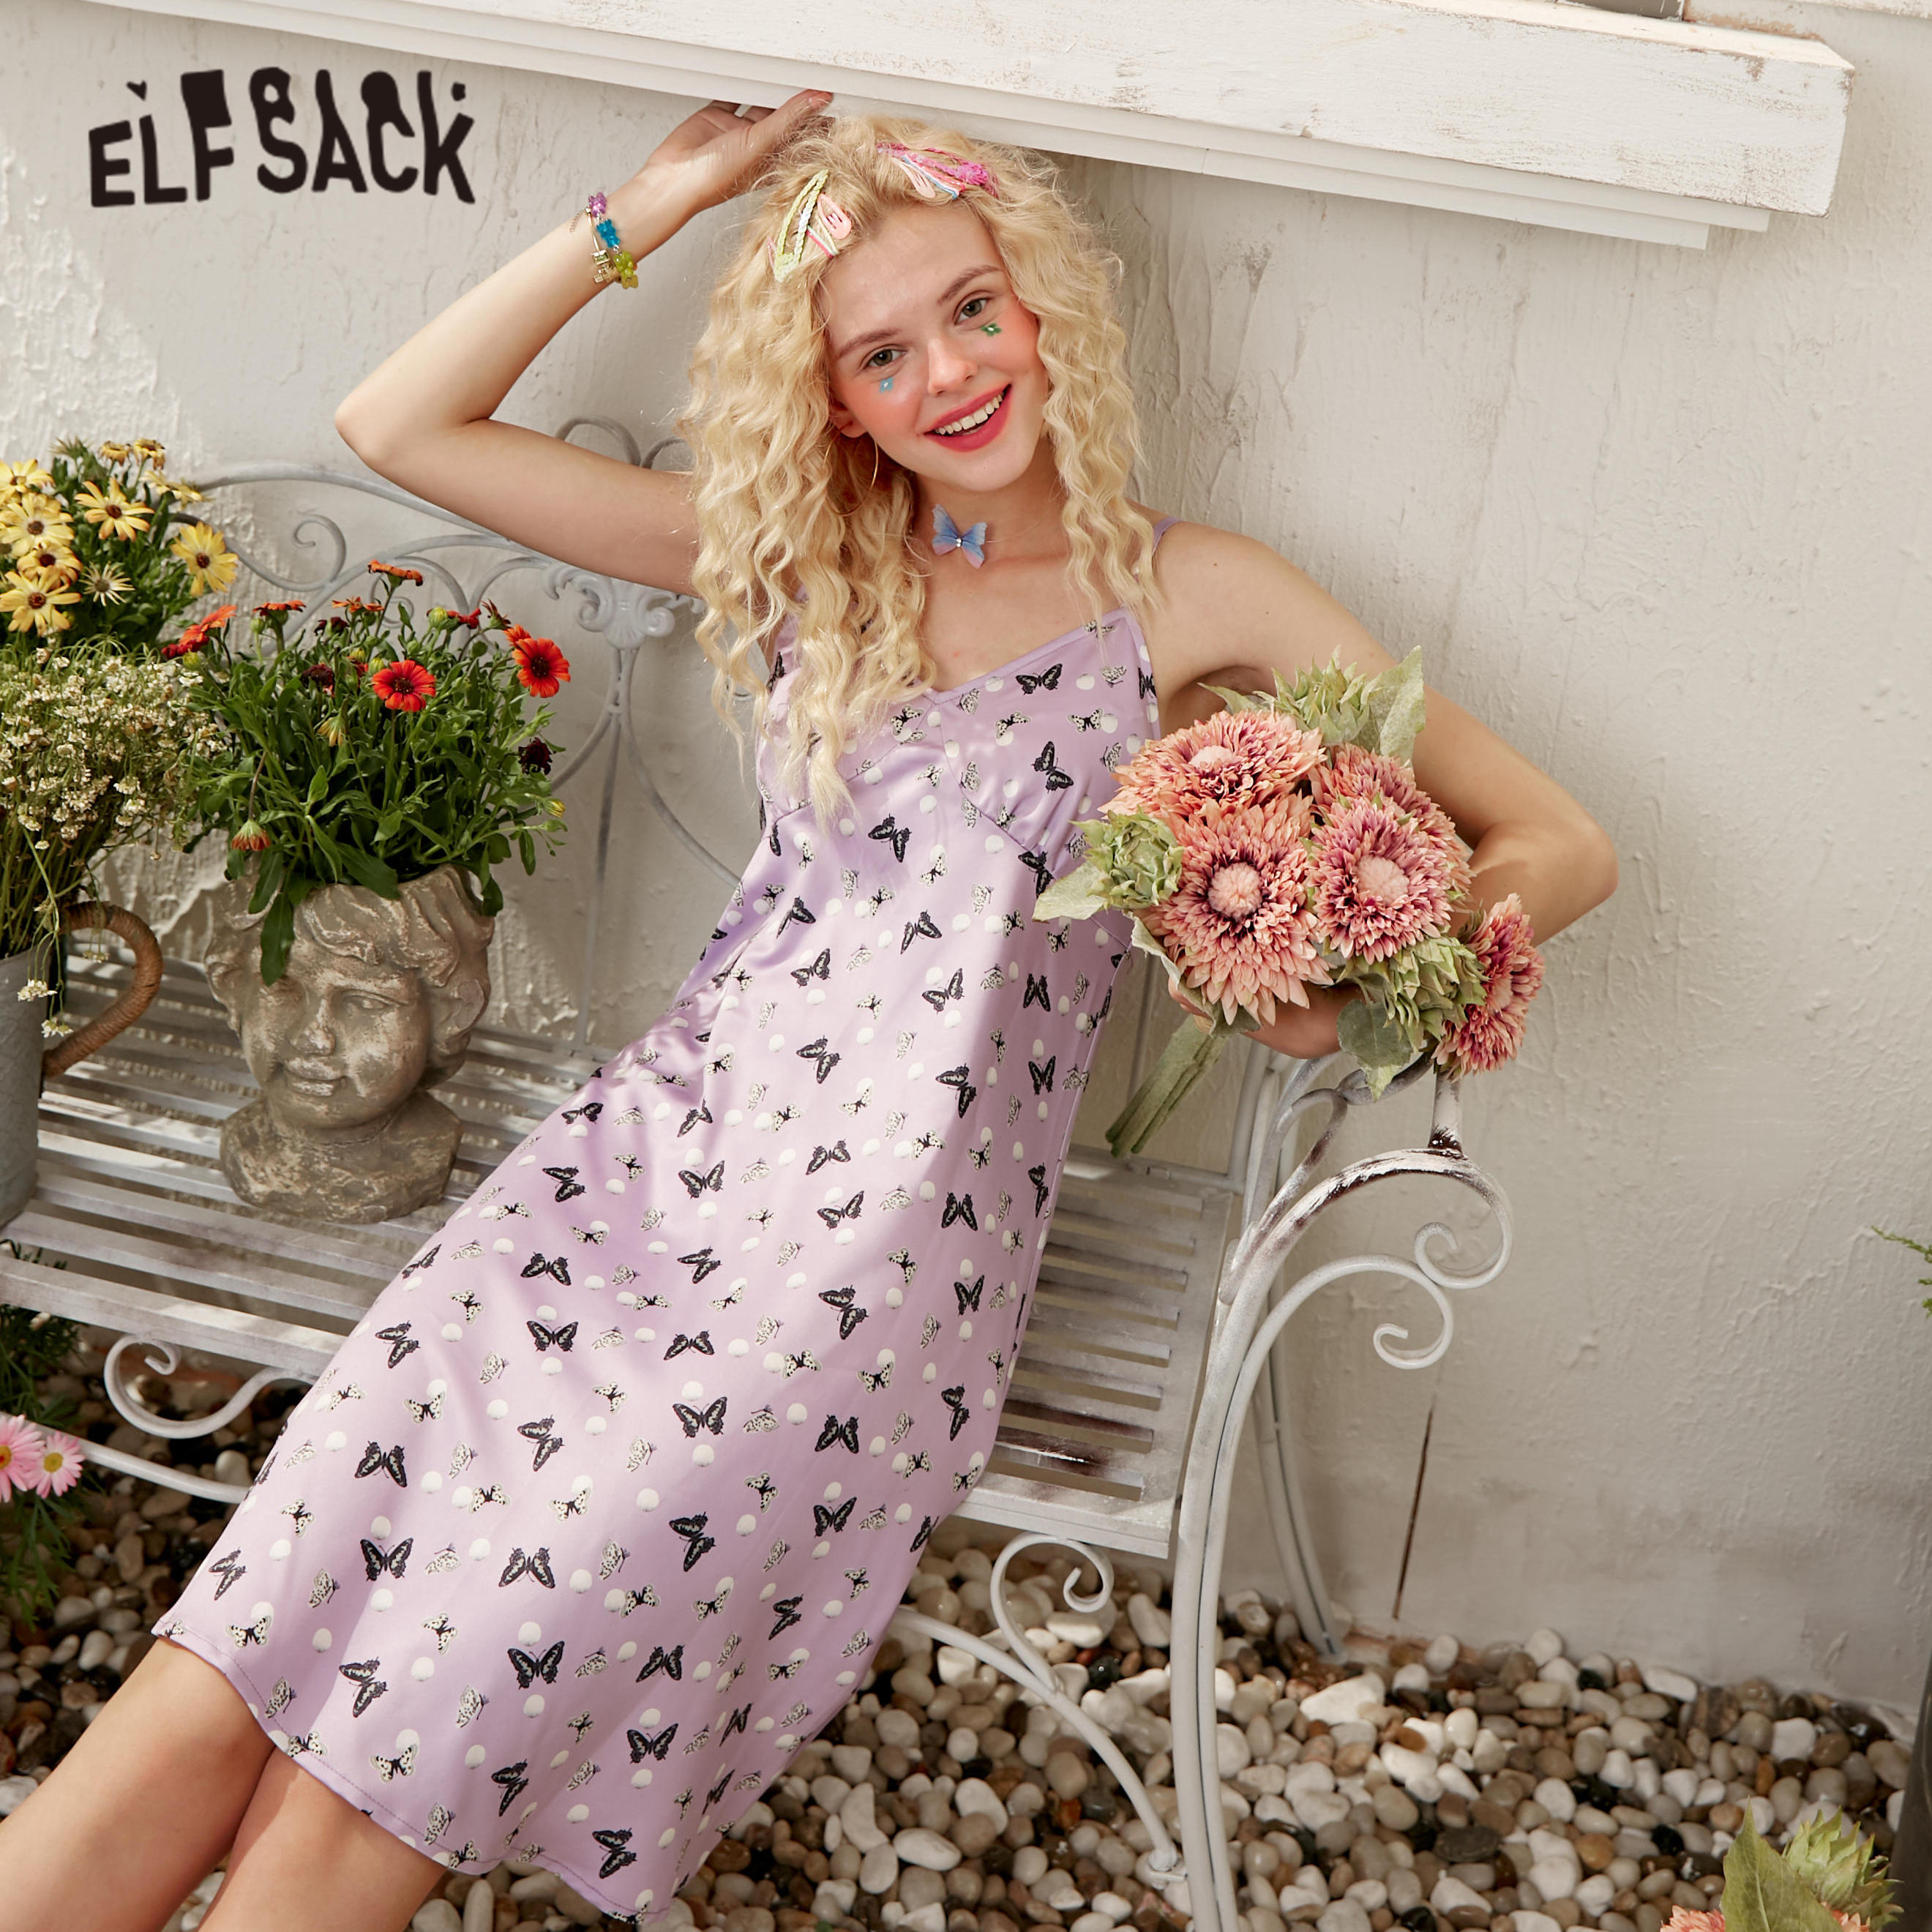 ELFSACK Purple Butterfly Casual Satin Pearl Cami Dress Women 2020 Summer ELF Vintage Cat Graphic Korean Girly Daily Cute Dresses